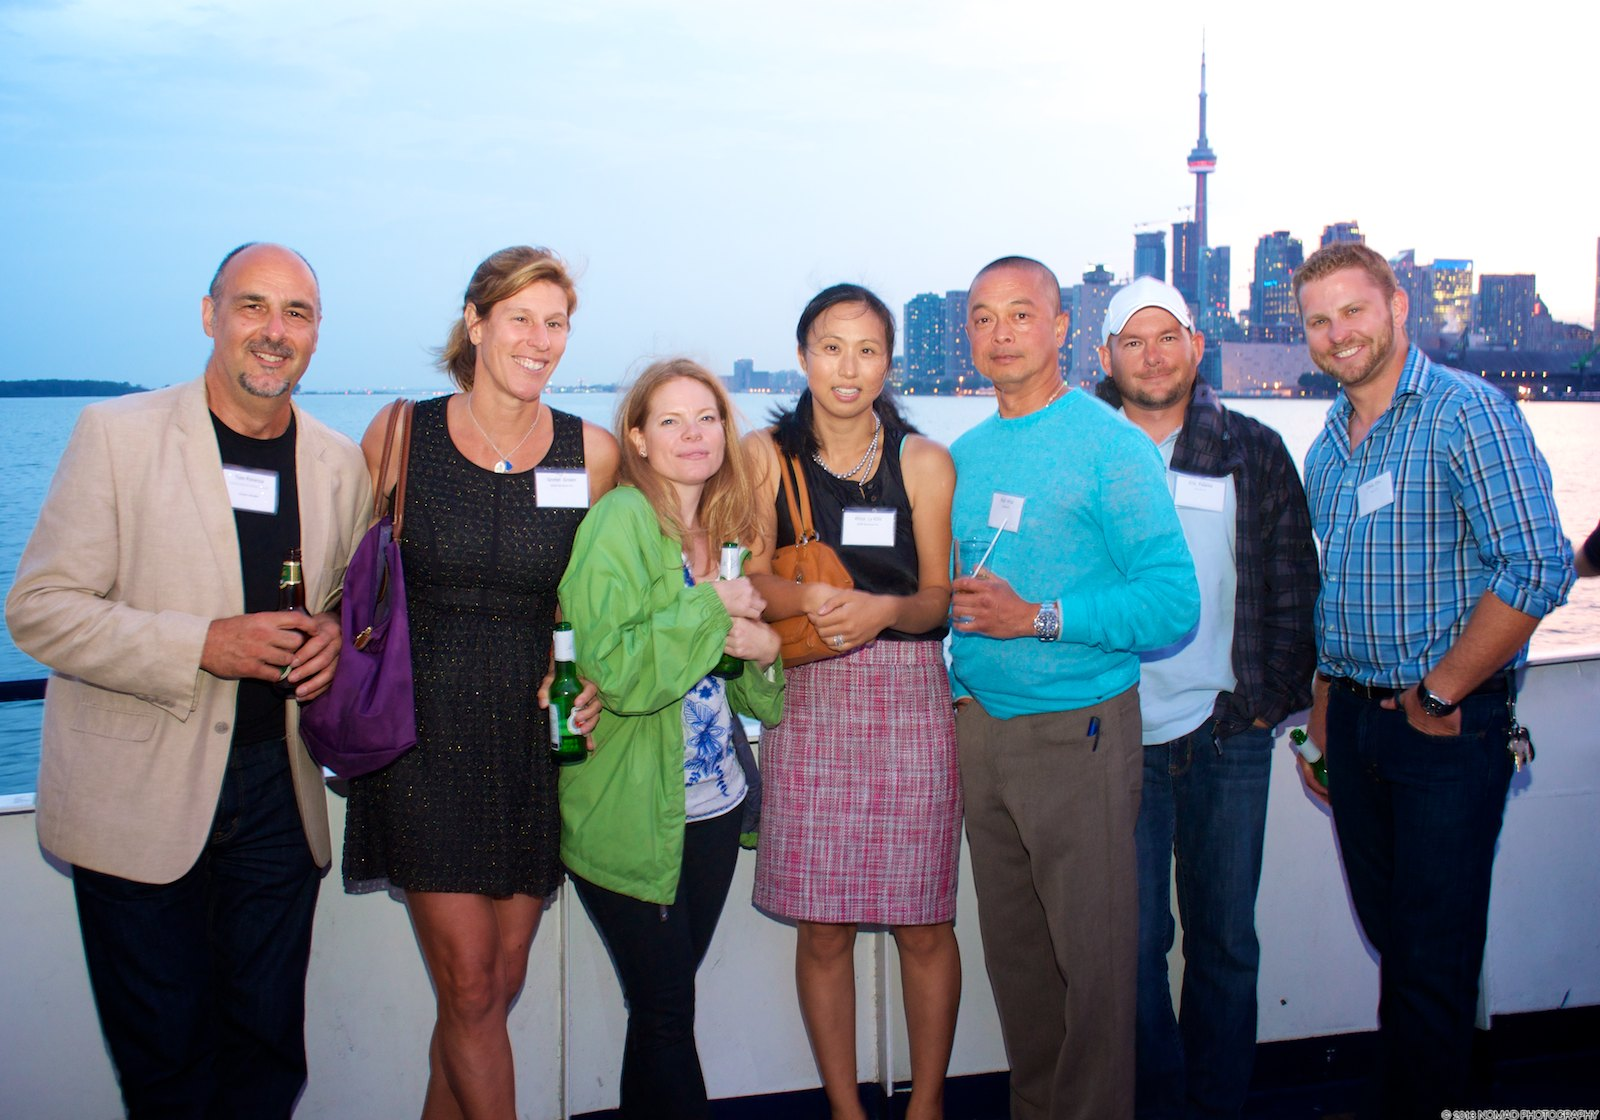 On September 11, 2013 Chapter Members and green building supporters set out to explore the revitalization project of Waterfront Toronto and watch the sun set aboard the Norther Spirit! This lively evening included a waterfront tour, dinner, great music, and an amazing view of Toronto's skyline. Pictures of the evening will be coming soon.